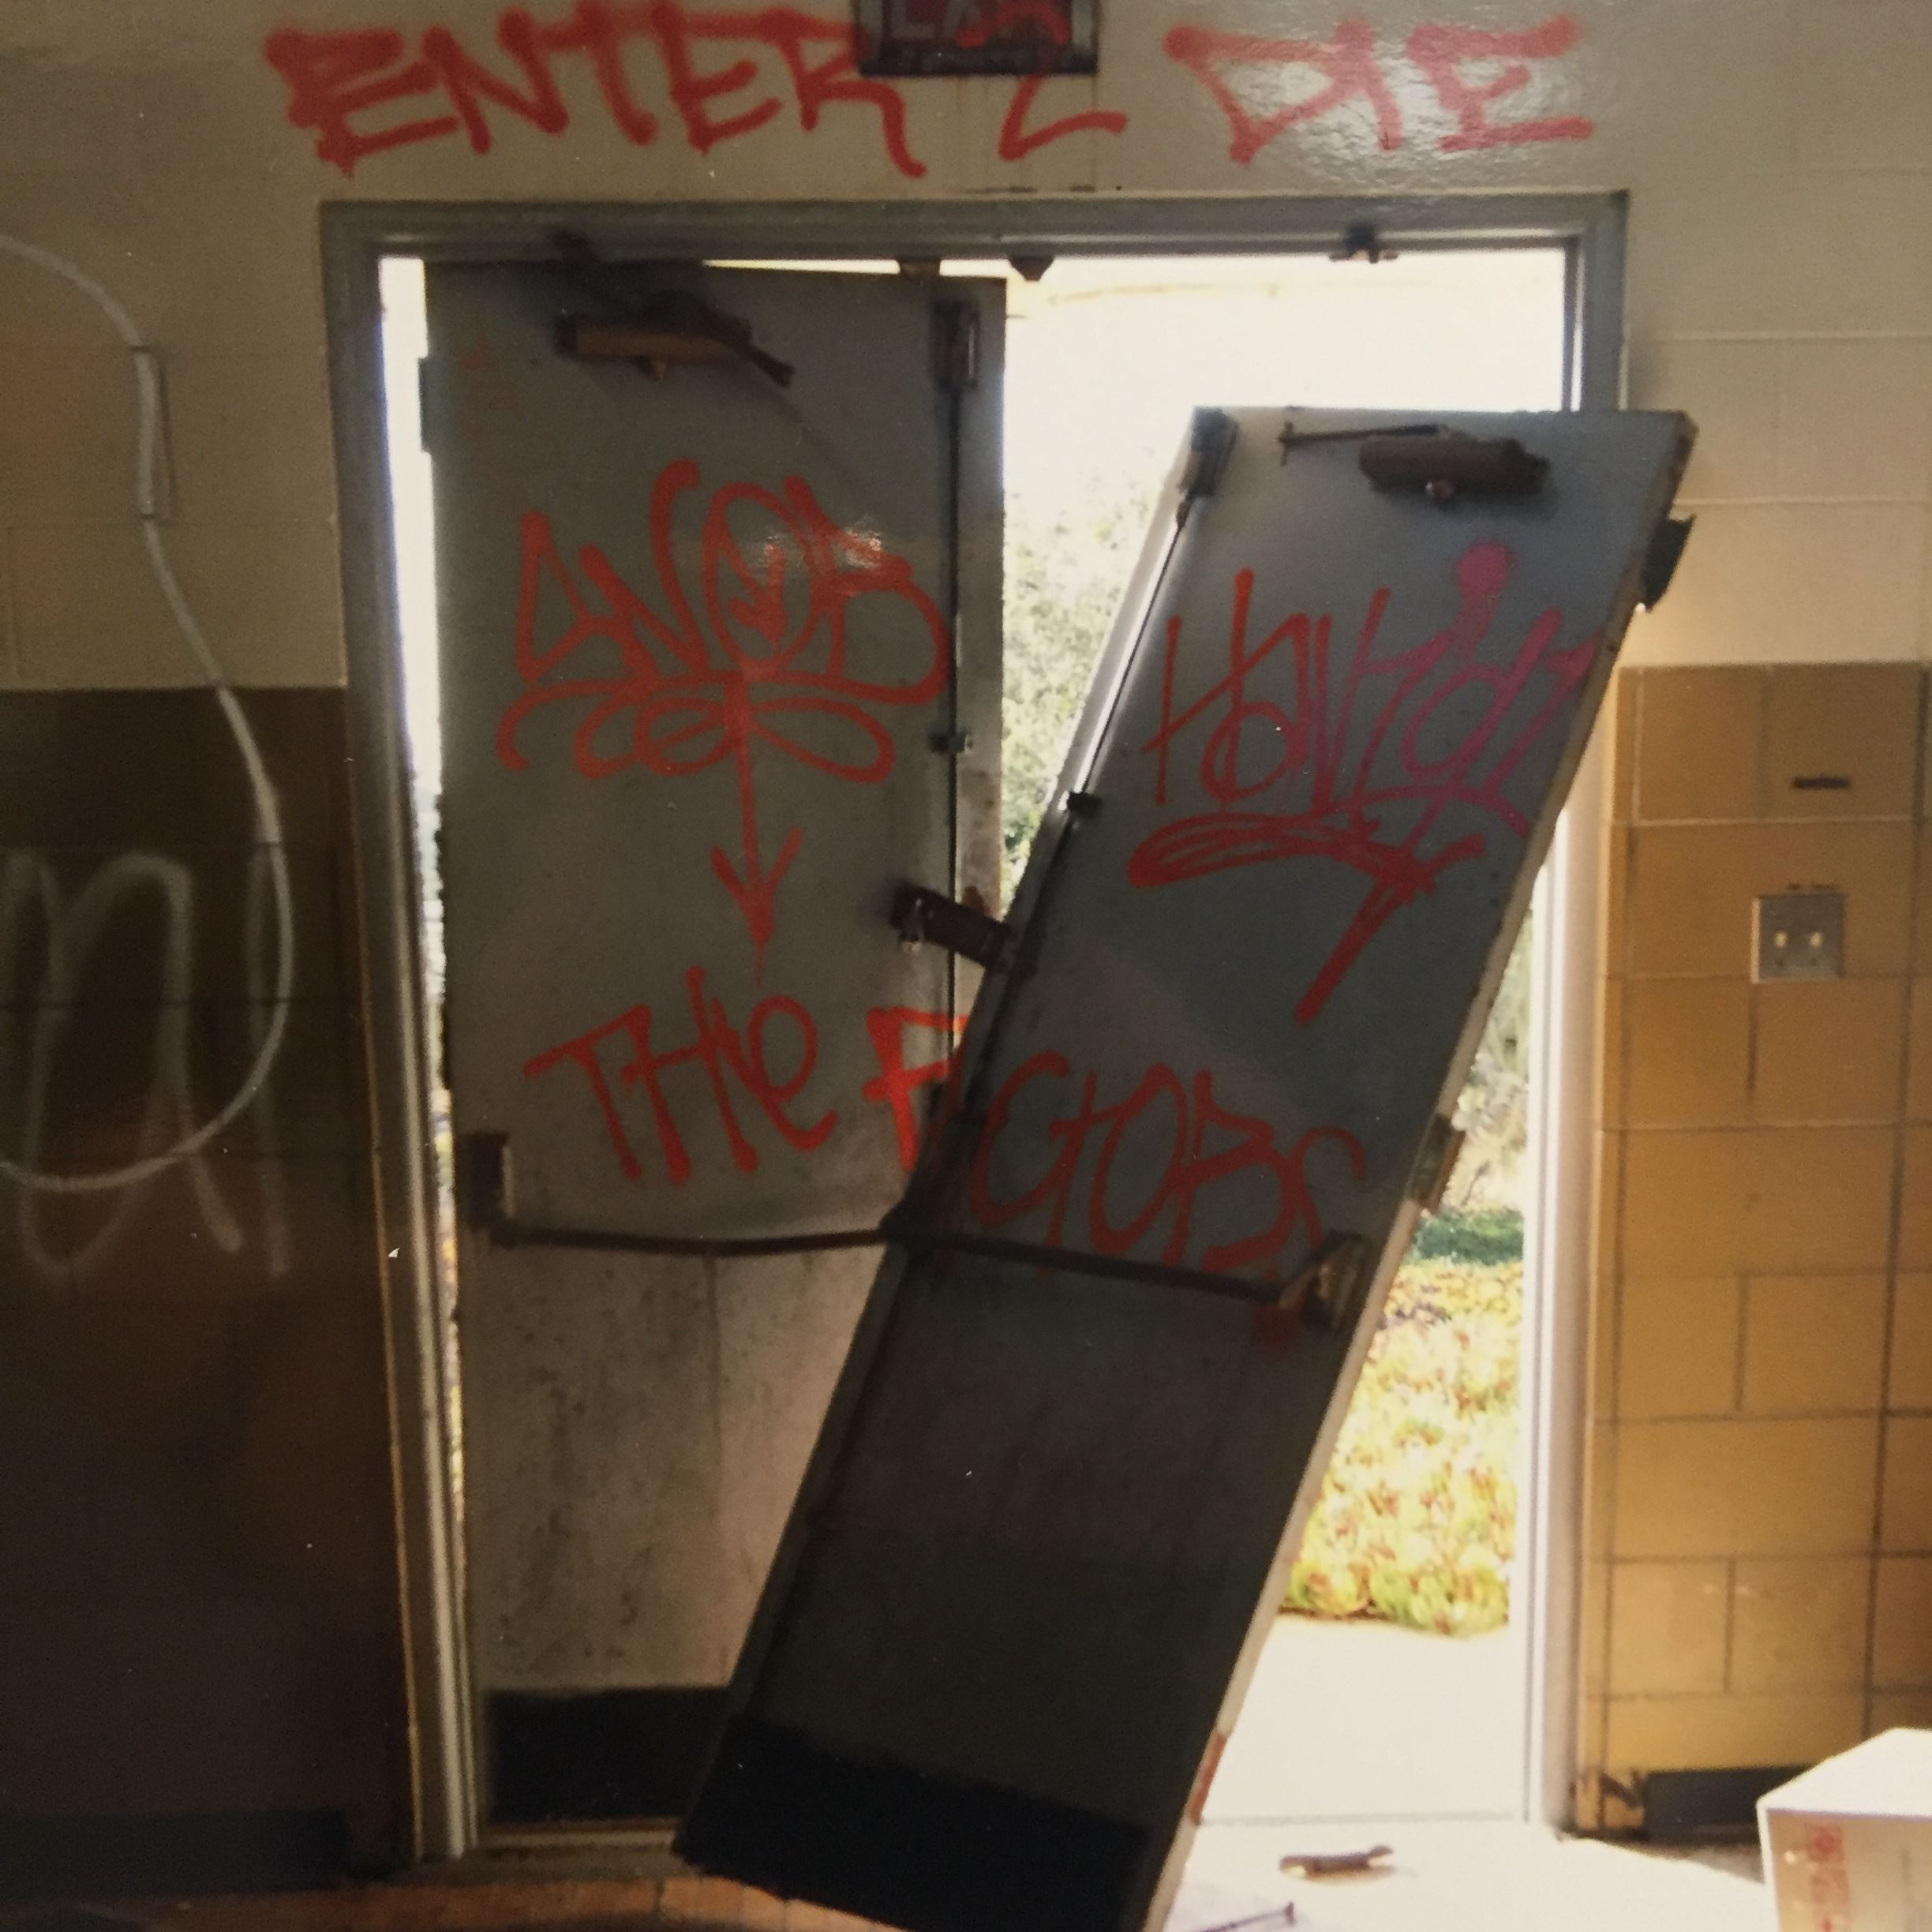 Photograph of graffiti on door with one door off the hinges